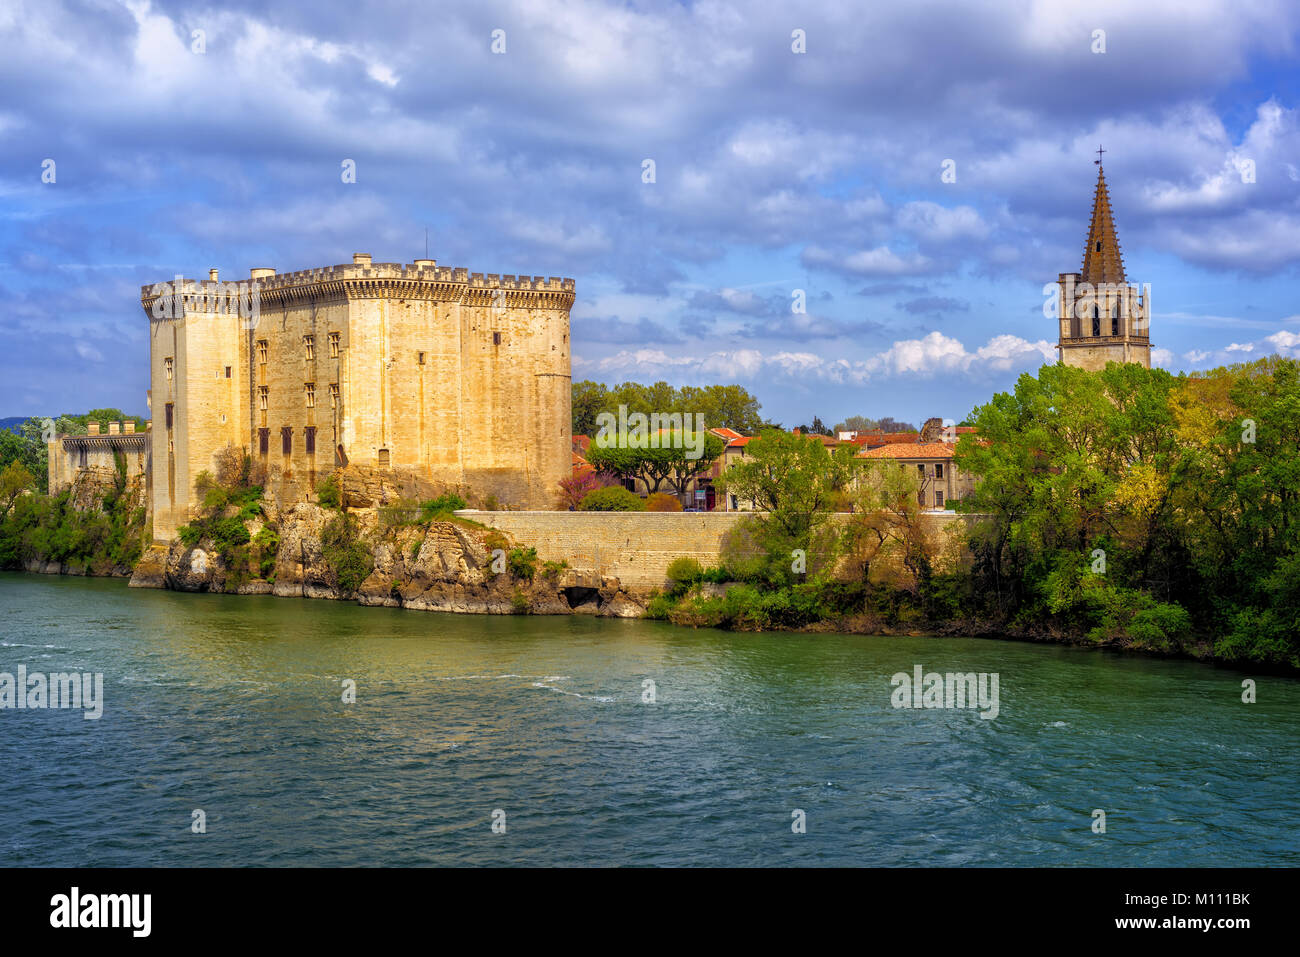 tarascon castle rhone river france stockfotos tarascon. Black Bedroom Furniture Sets. Home Design Ideas